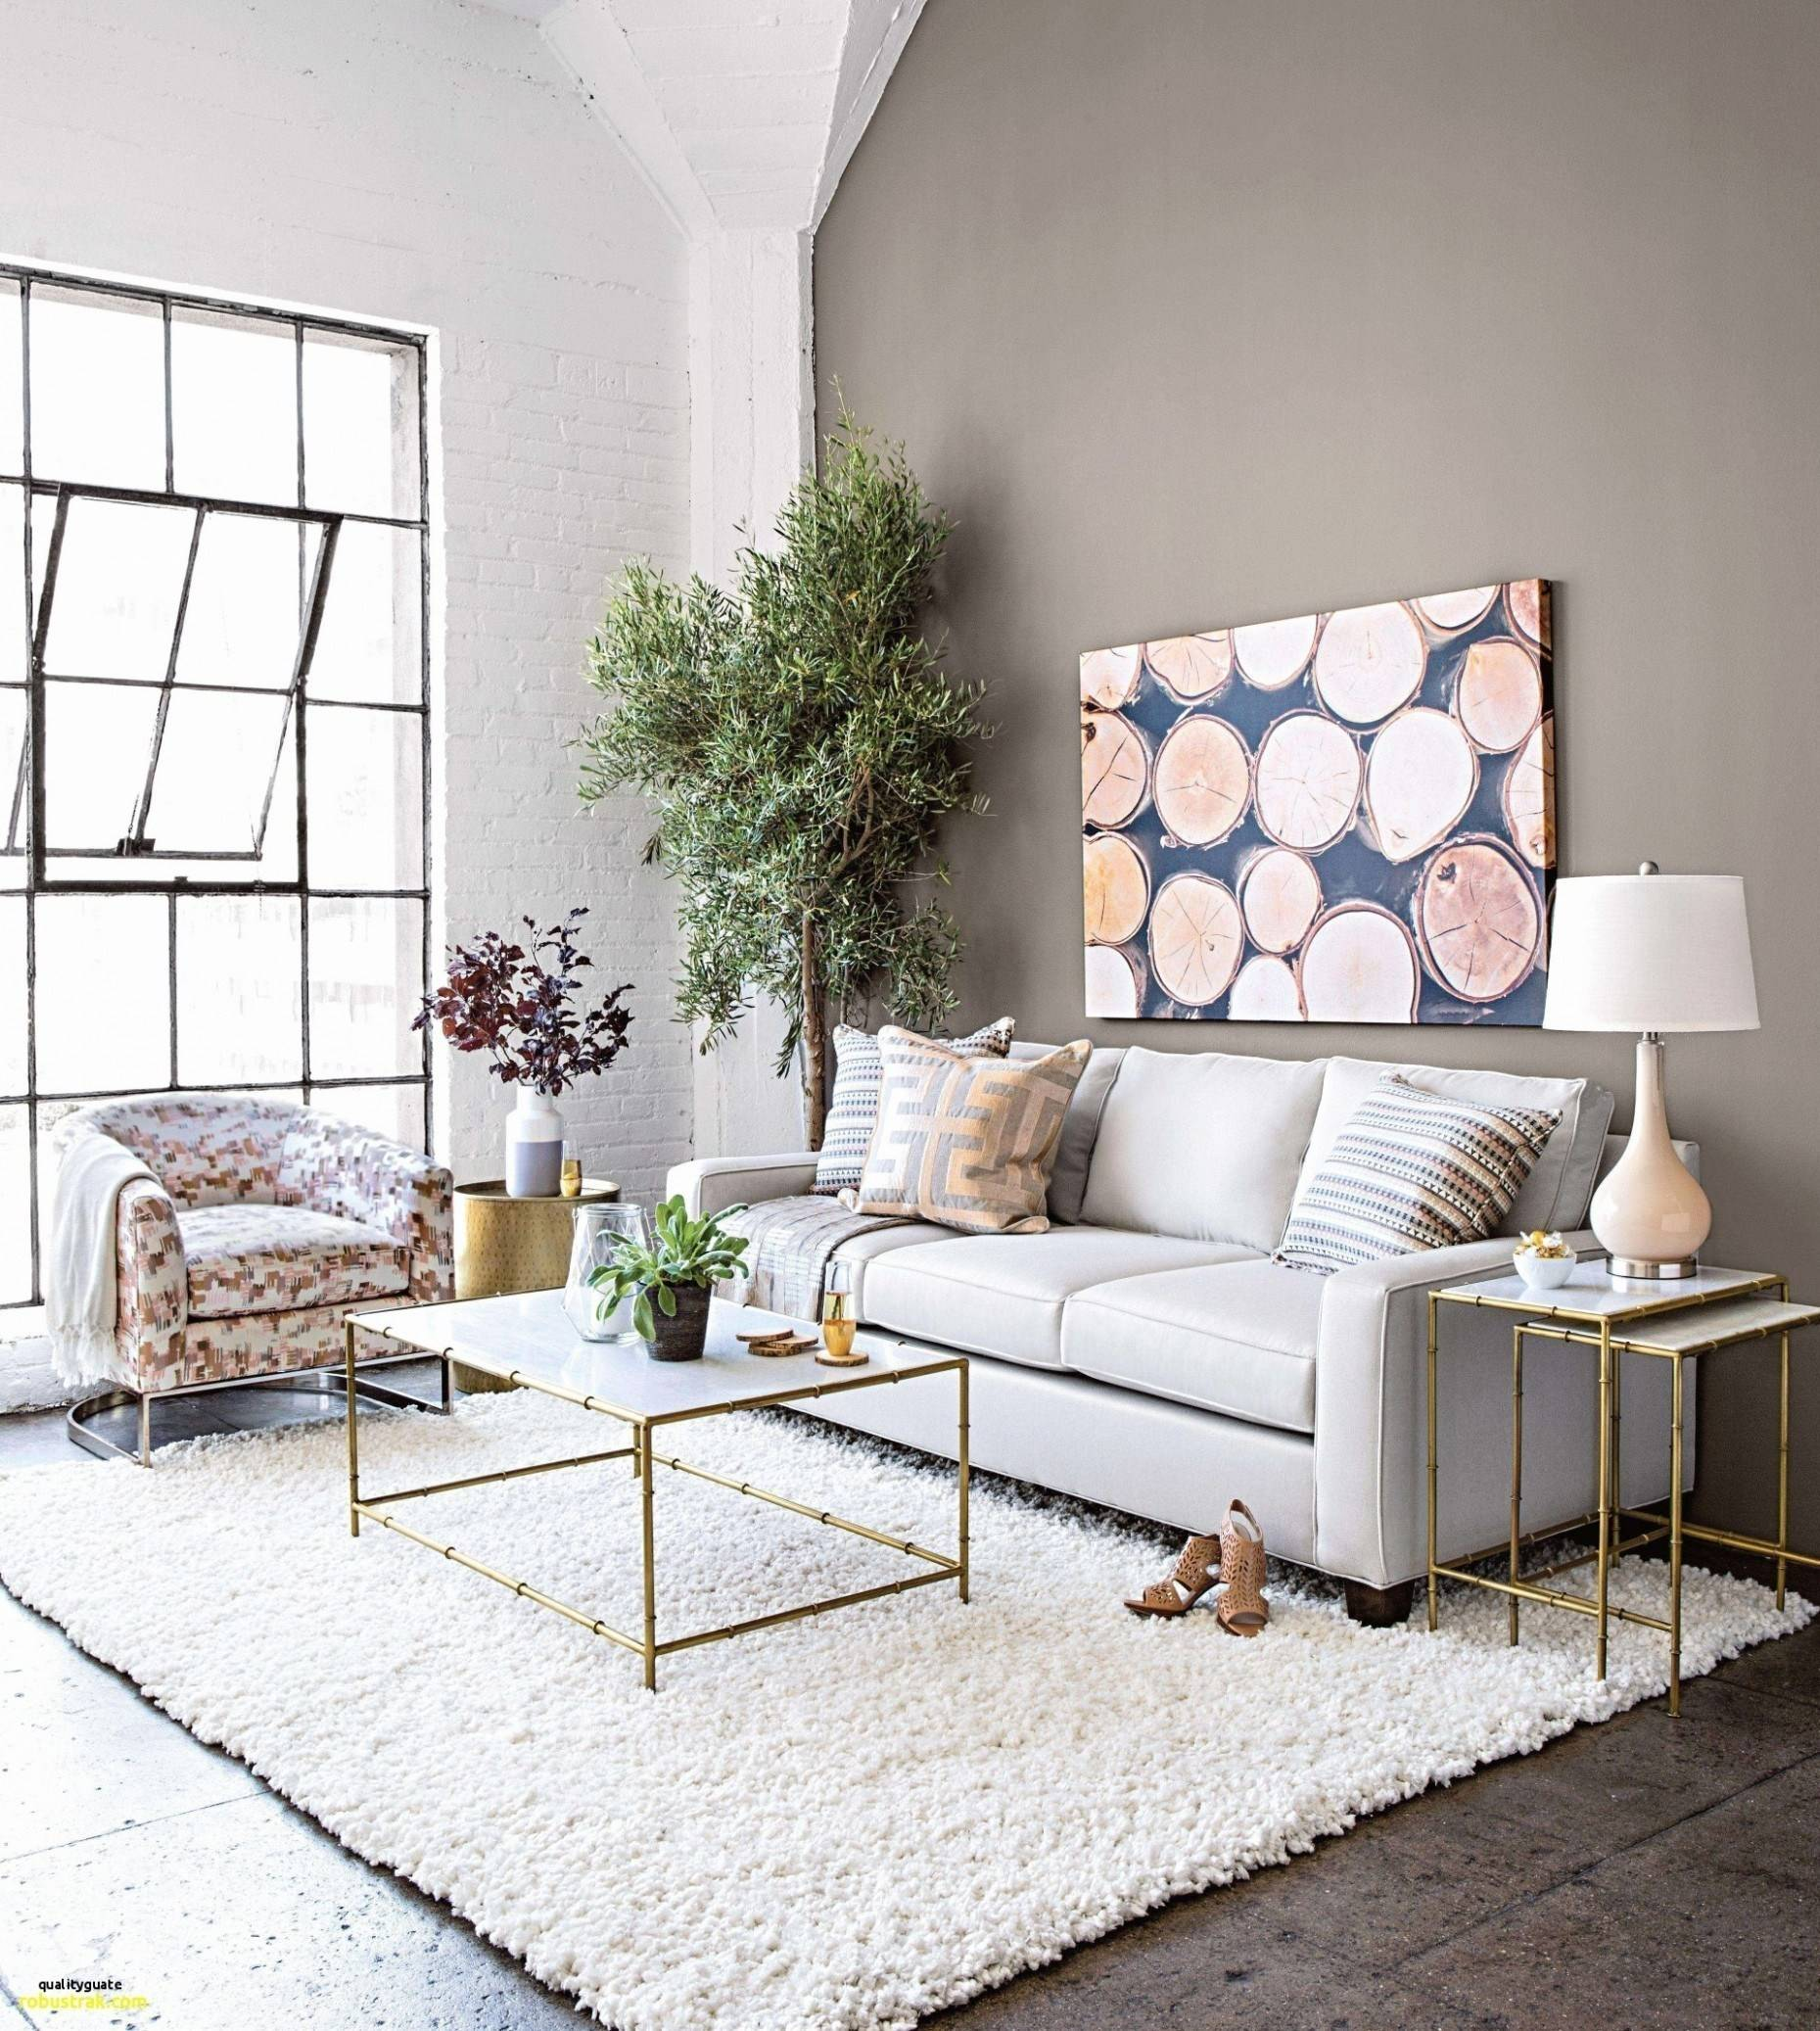 living room ideas for very small spaces awesome 47 fresh living room ideas in a small space of living room ideas for very small spaces